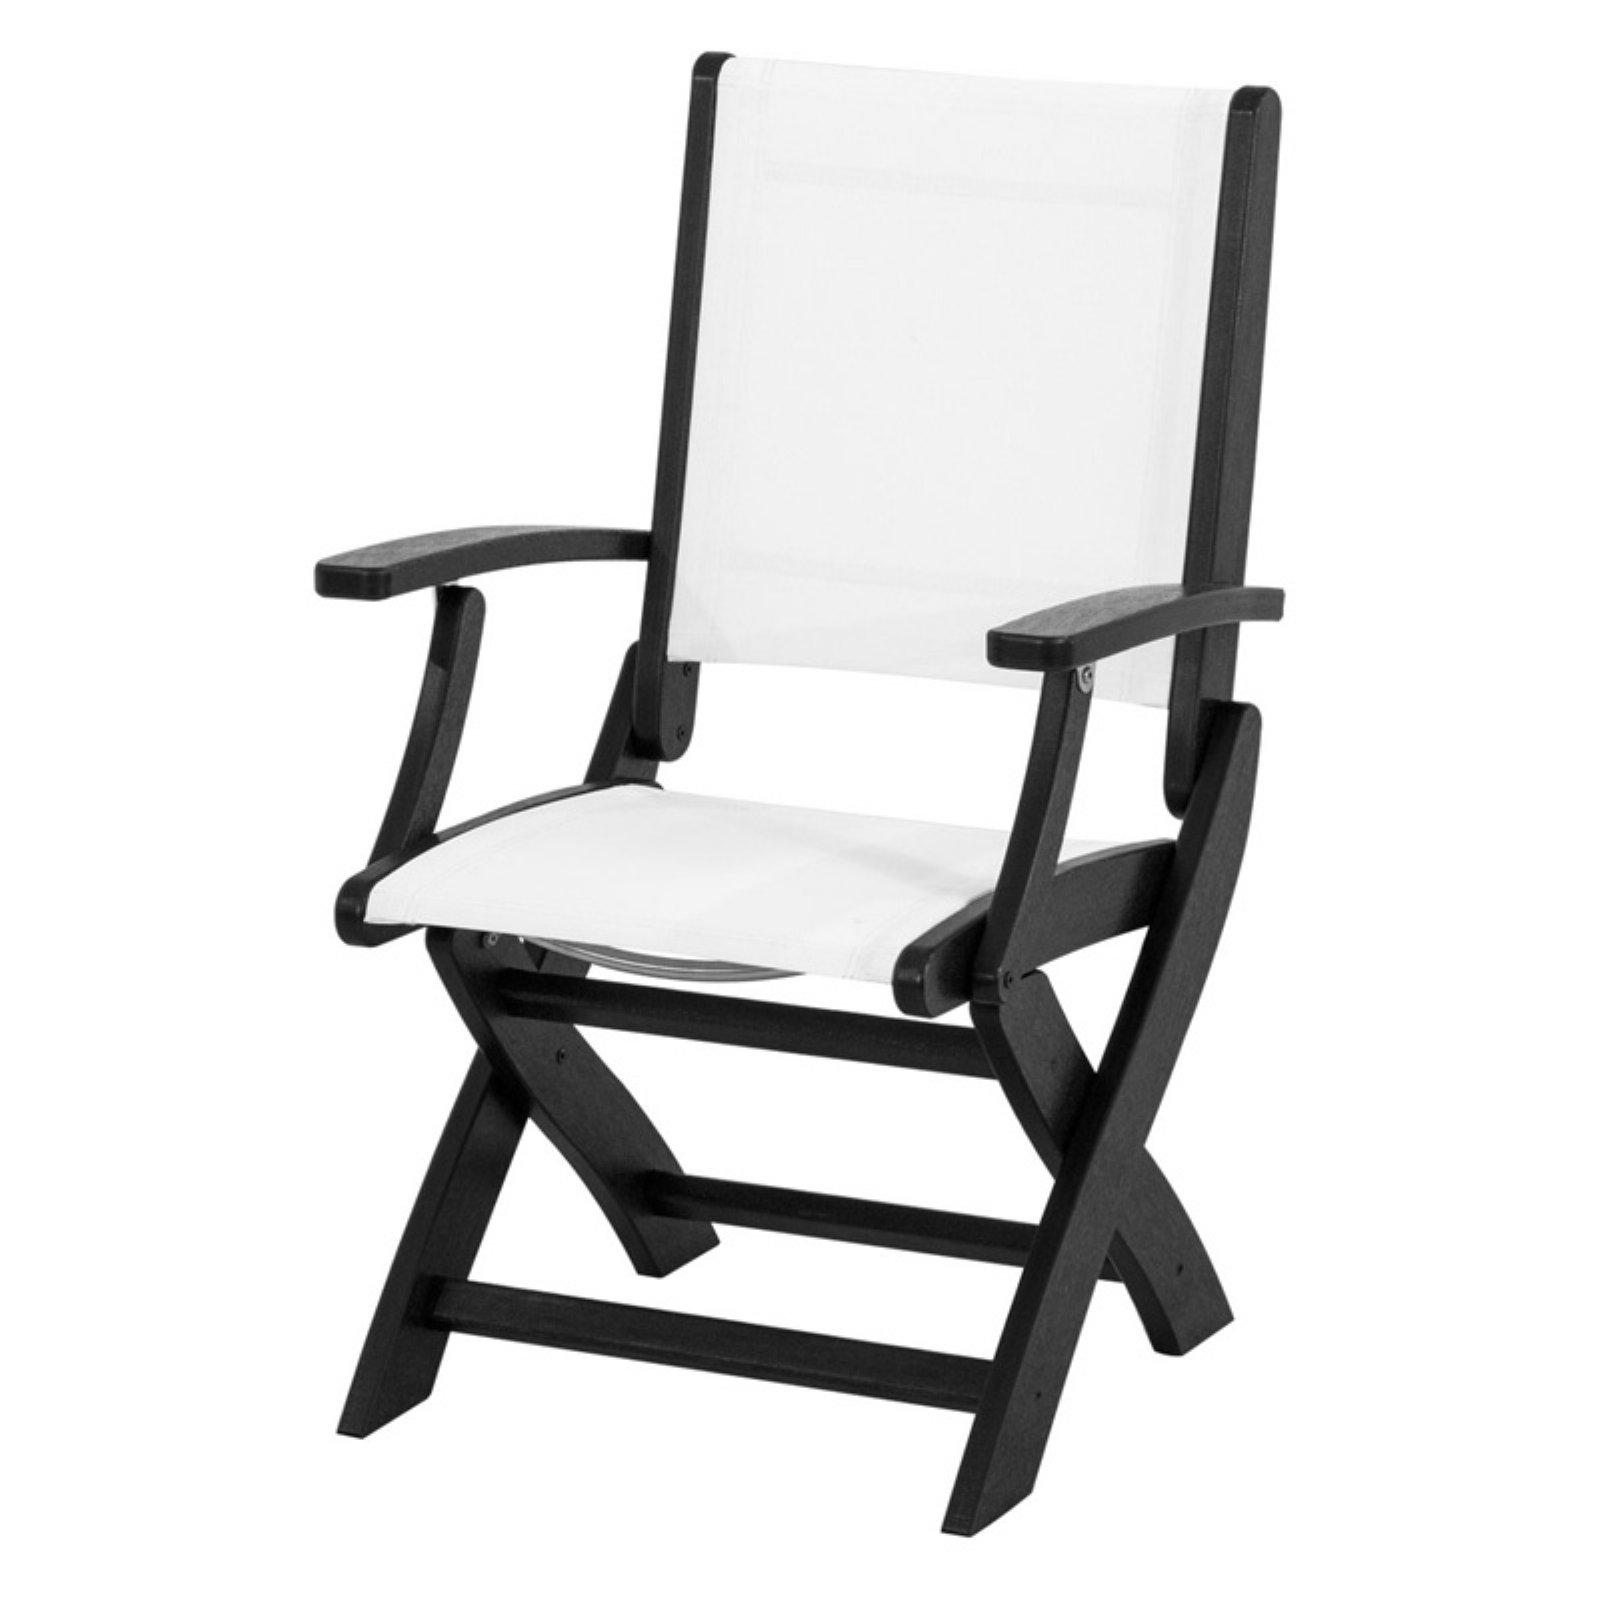 POLYWOOD; Coastal Sling Folding Chair